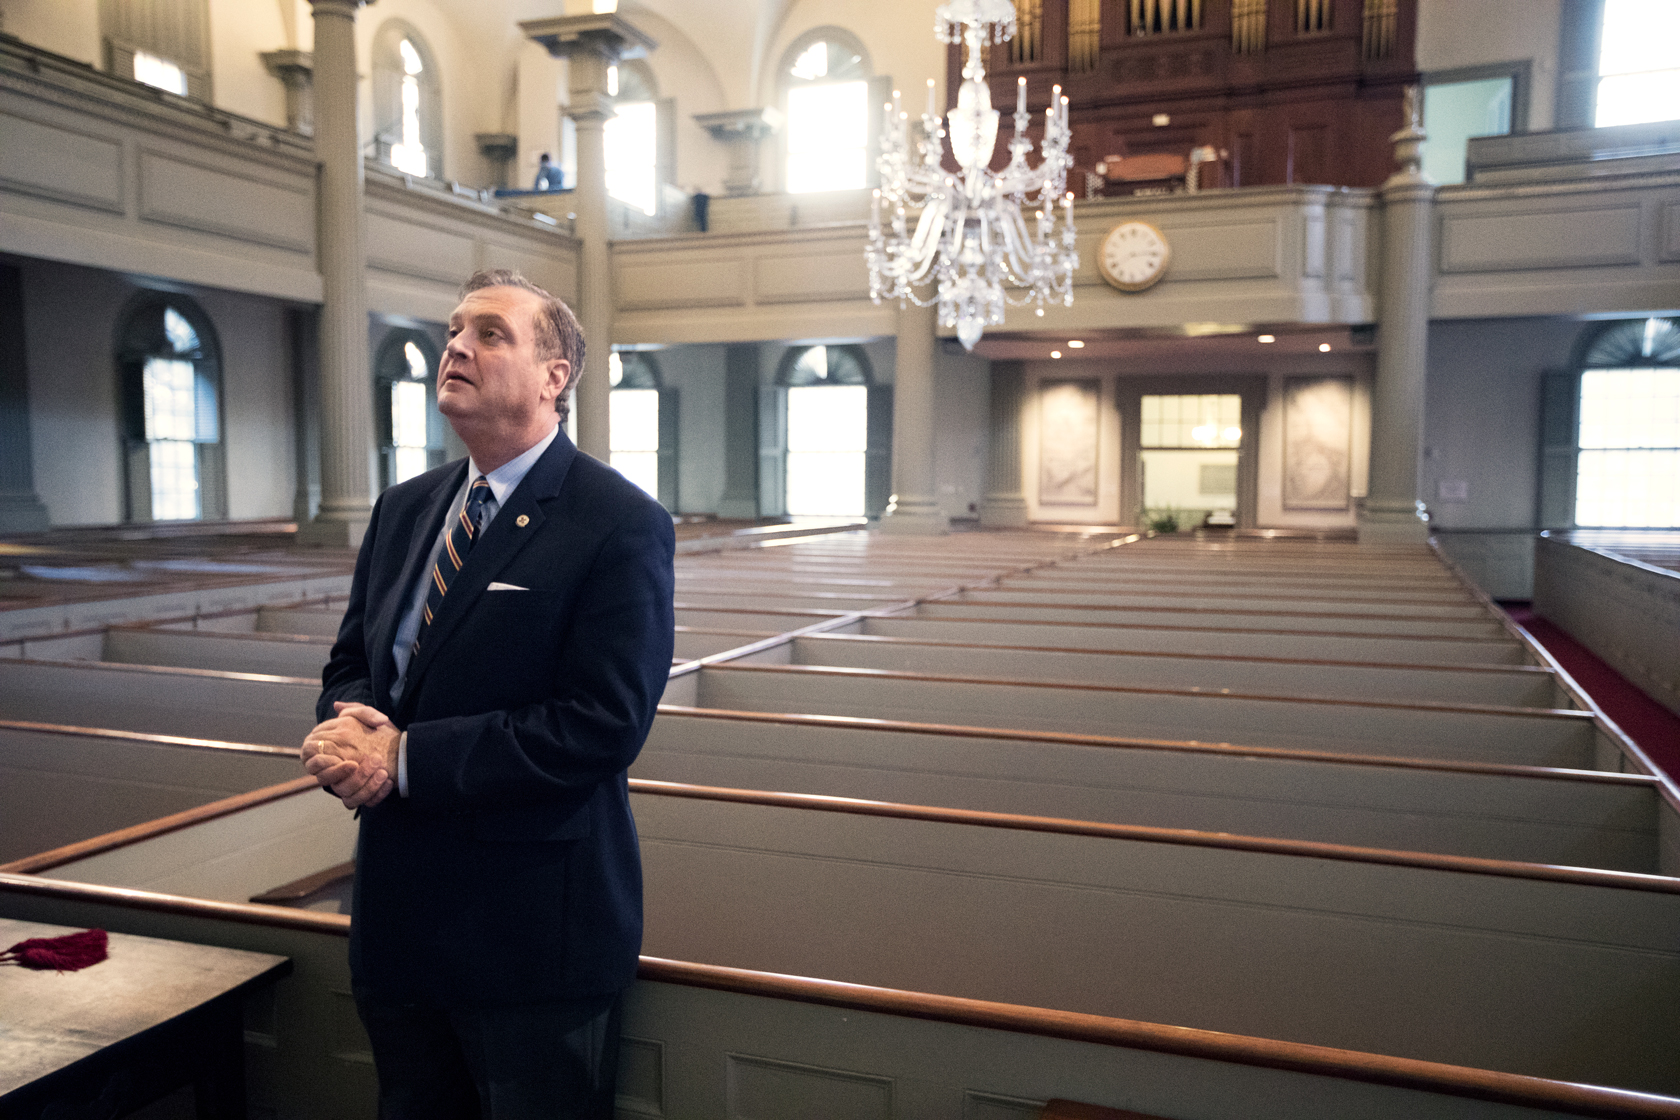 Mohler stands in the sanctuary of the First Baptist Church in America in Providence, Rhode Island.